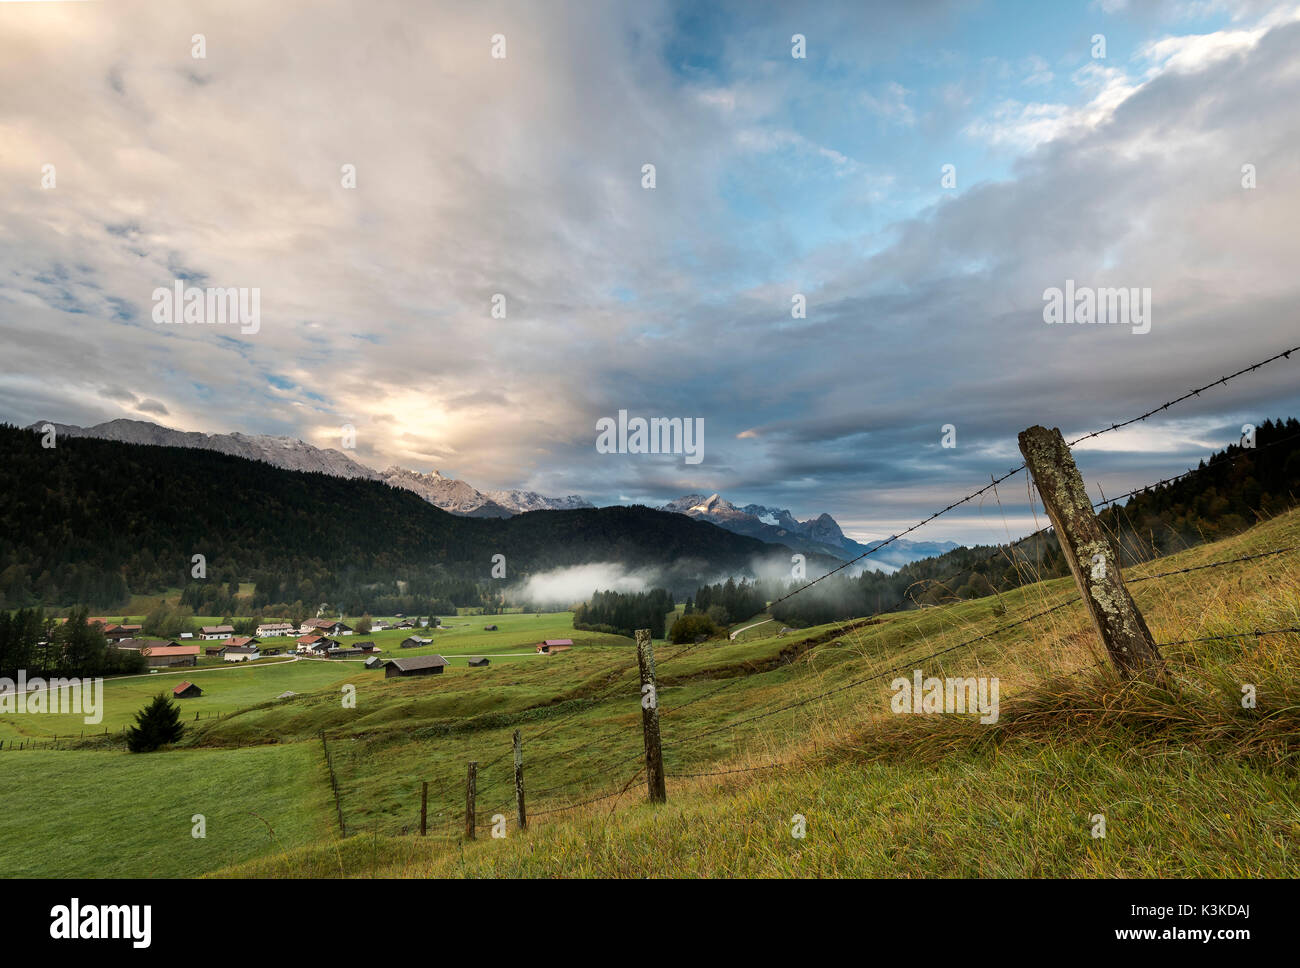 mossy pasture fence in a mountain pasture, in the background the hamlet Gerold, fog and clouds, as well as the Zugspitze massif in the morning light. - Stock Image